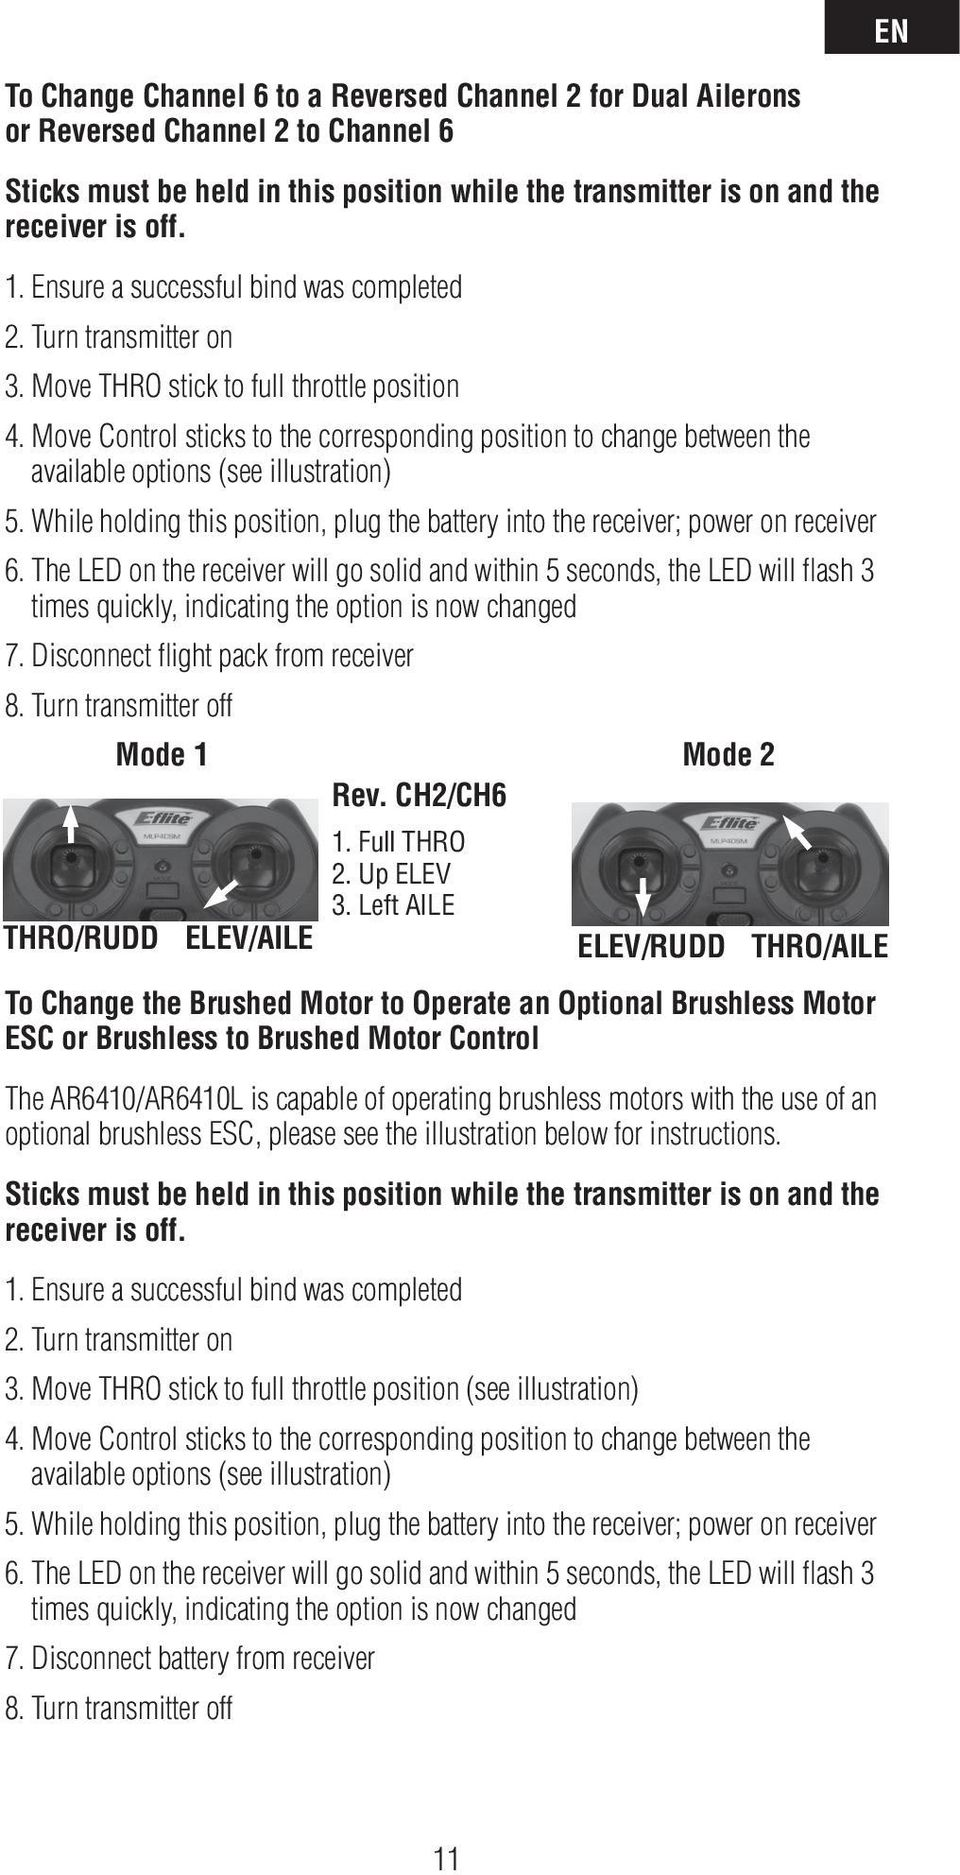 Move Control sticks to the corresponding position to change between the available options (see illustration) 5. While holding this position, plug the battery into the receiver; power on receiver 6.